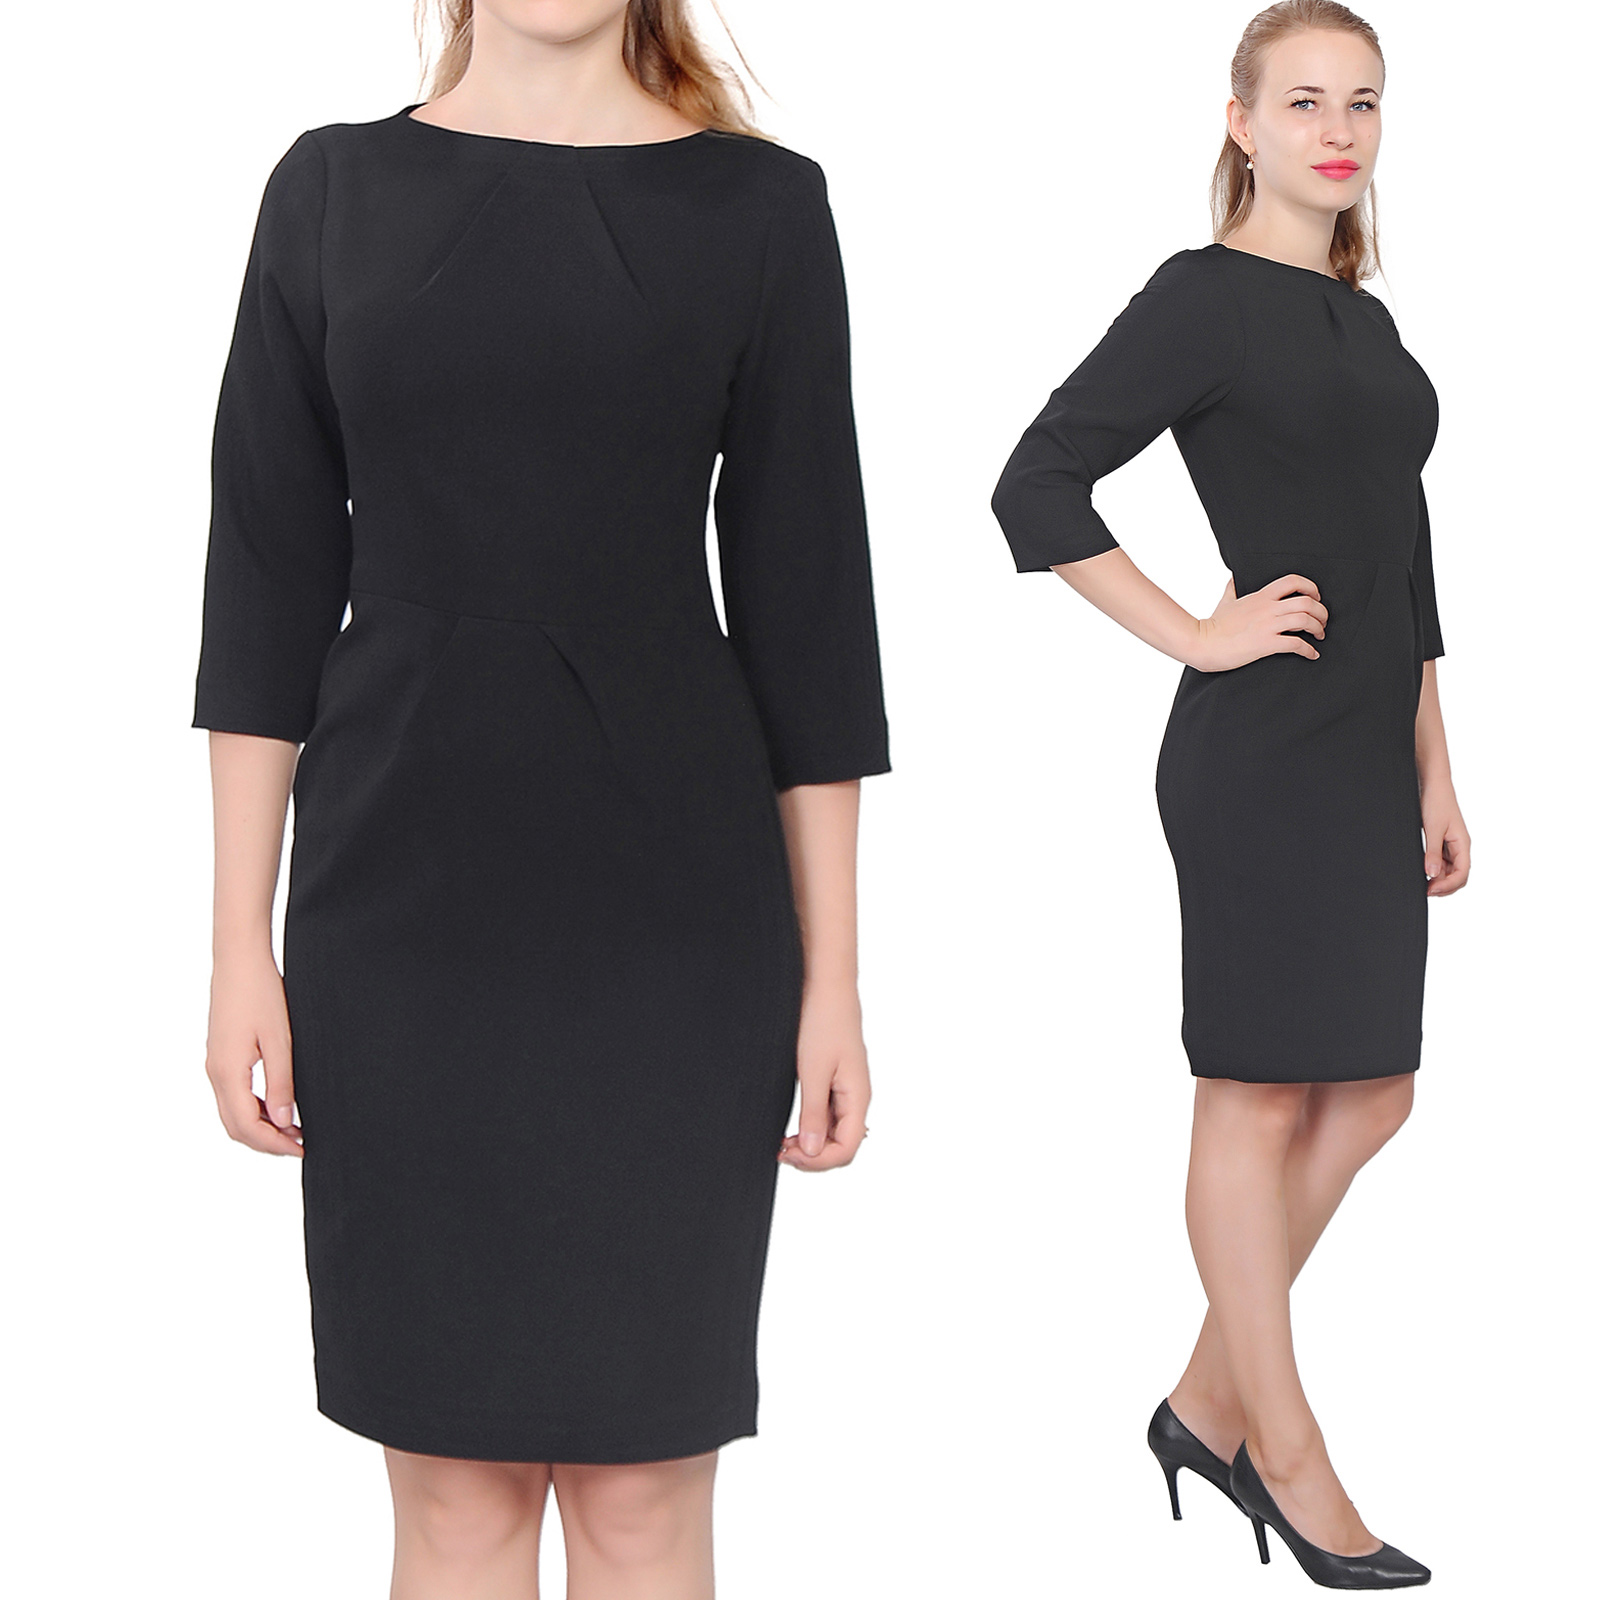 31235919612 WOMENS ELEGANT CLASSY WORK DRESS OFFICE BUSINESS LONG SLEEVE KNEE ...